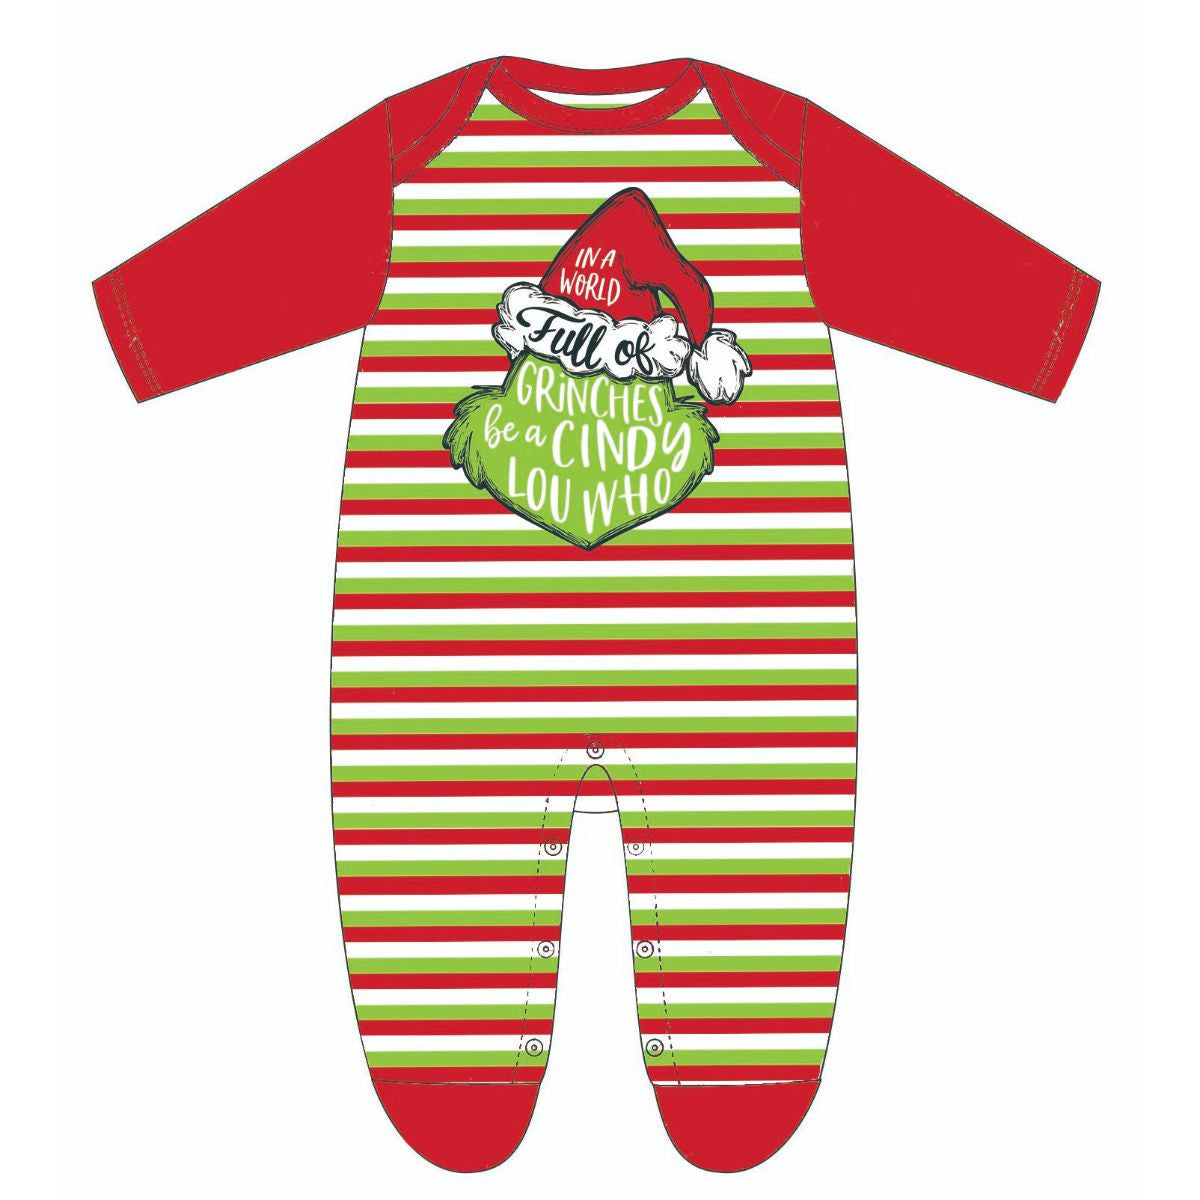 In a World Full of Grinches Be a Cindy Lou Who Multi Stripe Onesie